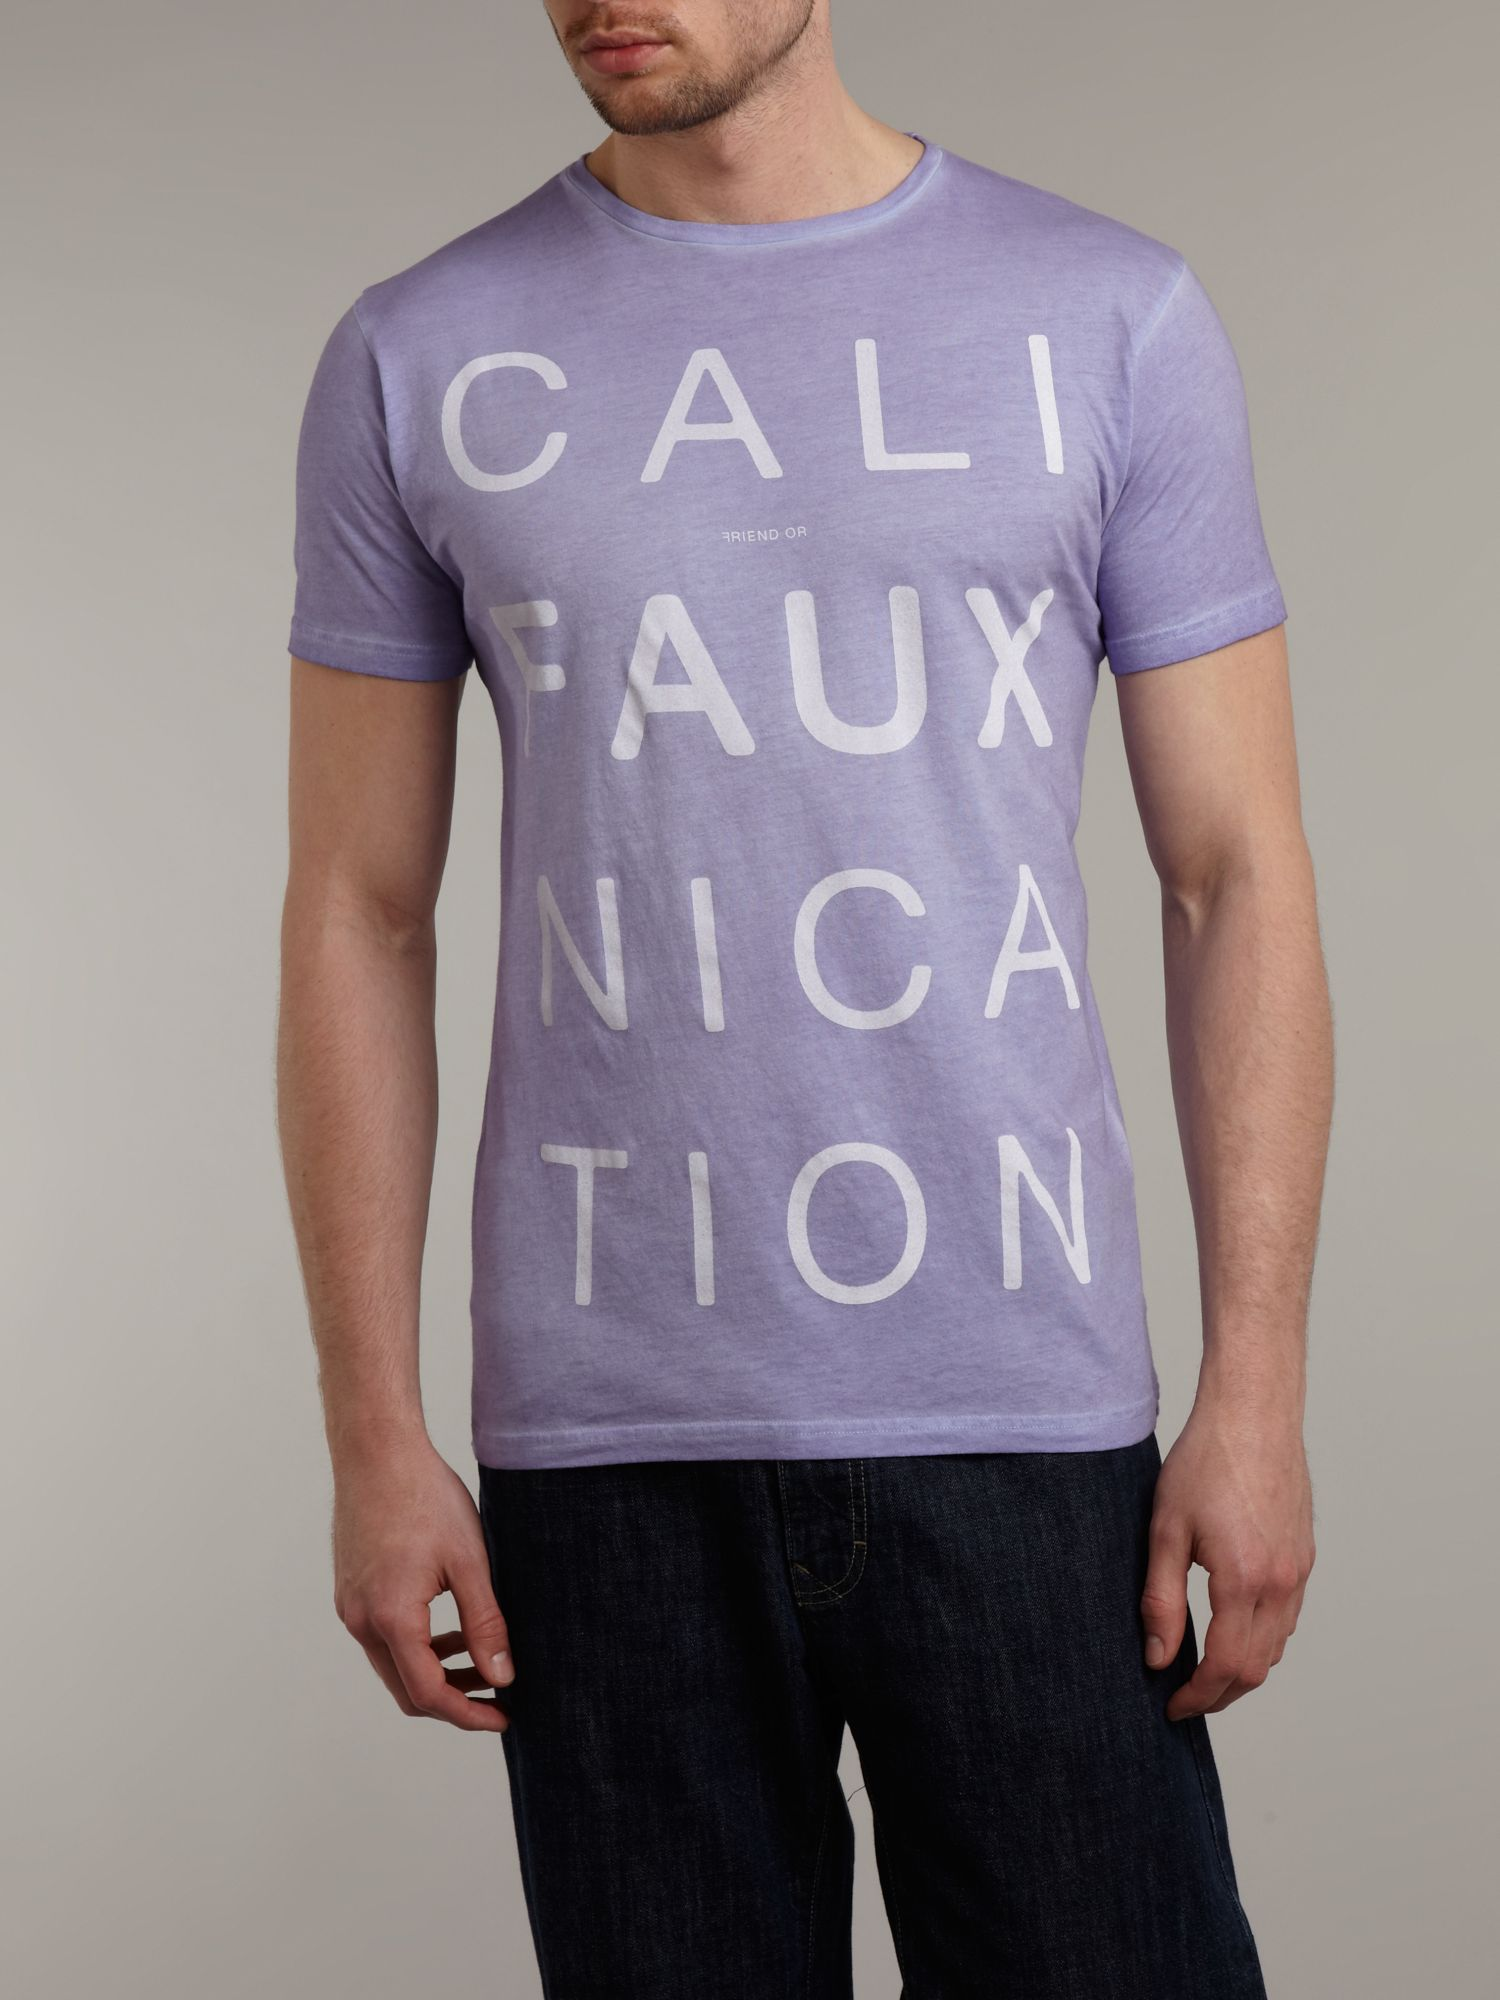 Califauxnication t-shirt